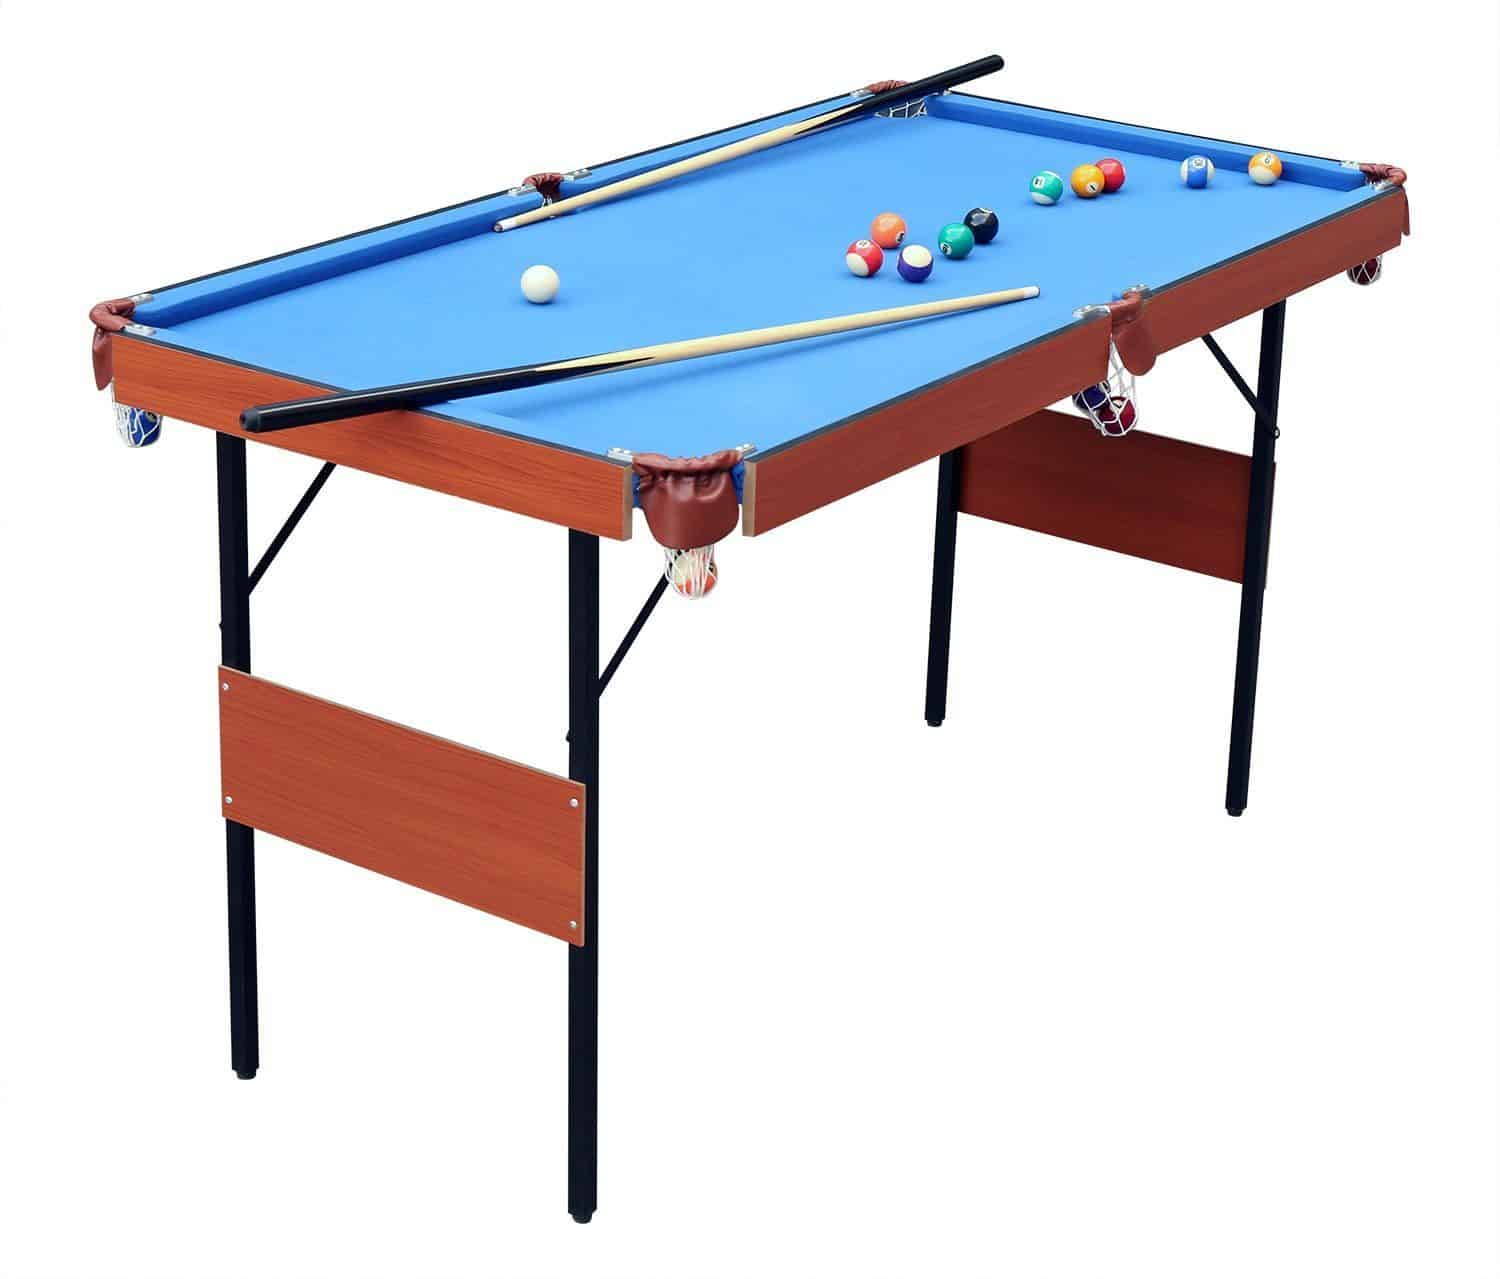 The Honest Grand Review Of Small Pool Tables CuesUp - Pool table in small space